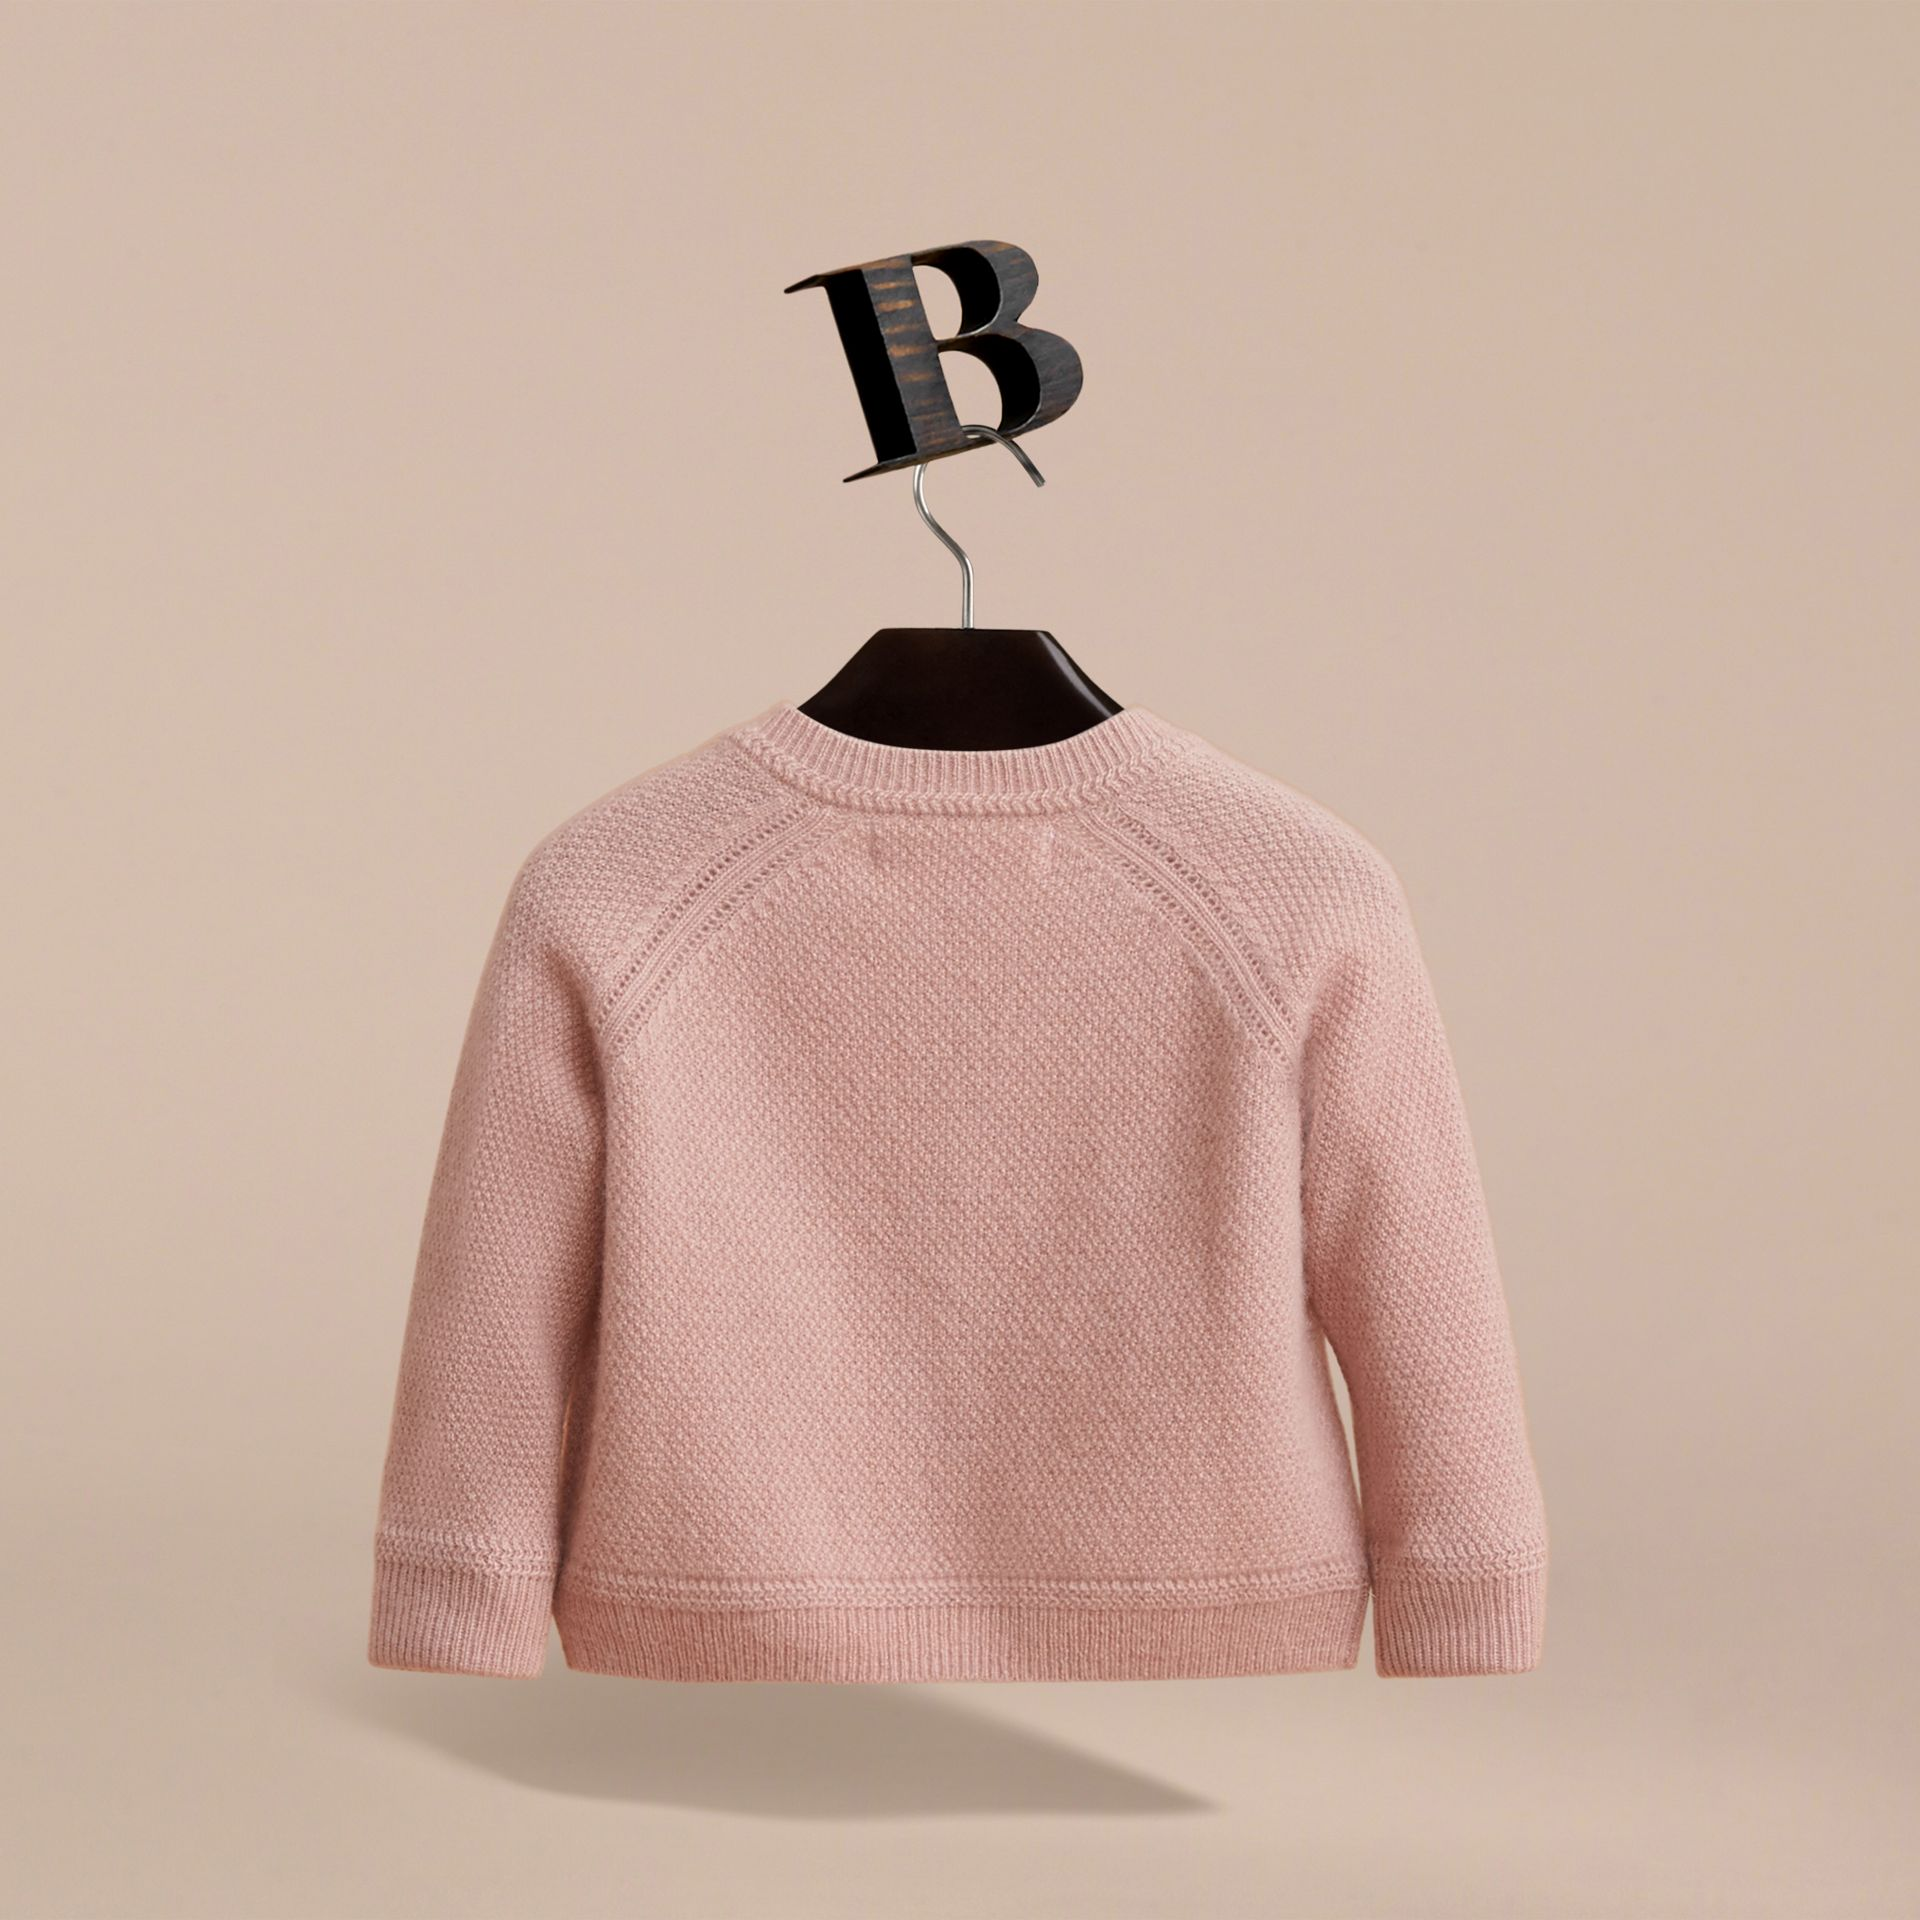 Textured Knit Cashmere Cardigan in Dusty Pink | Burberry United Kingdom - gallery image 3